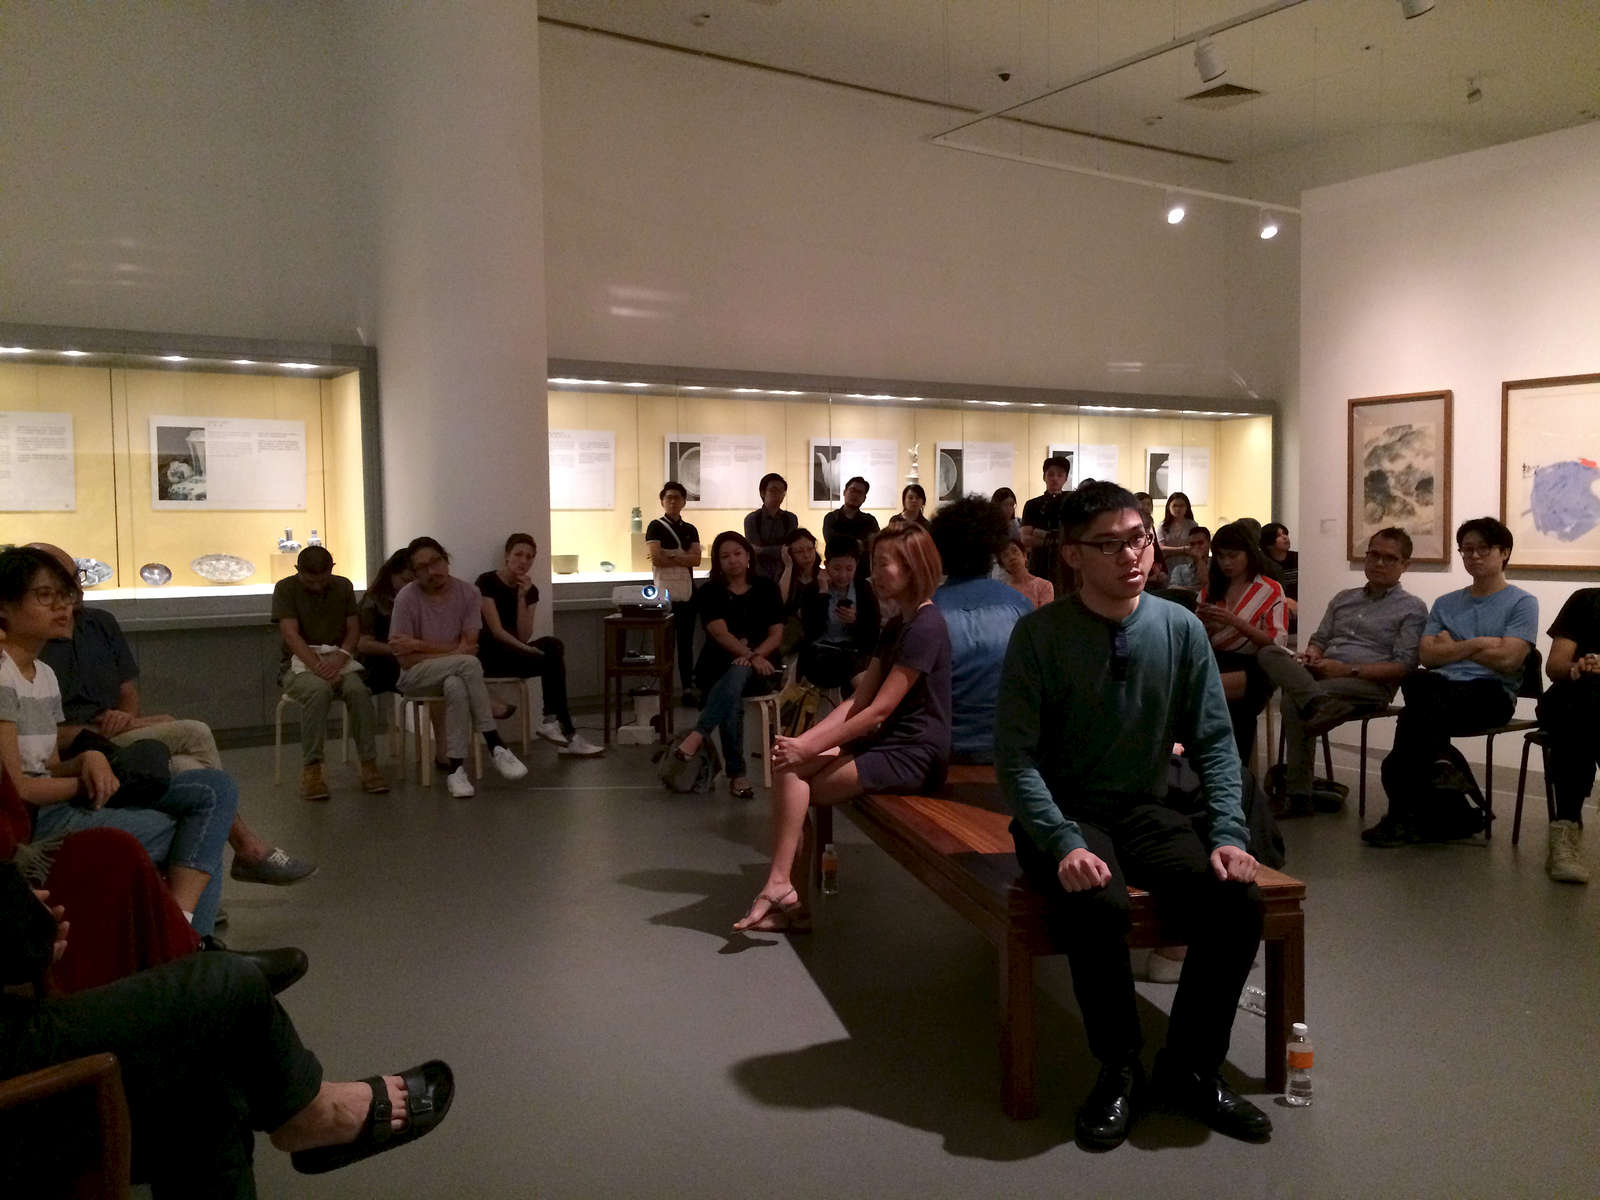 A recitation performance, centre right, during the opening of the 2nd iteration of Crossings at NUS Museum on May 3, 2018.